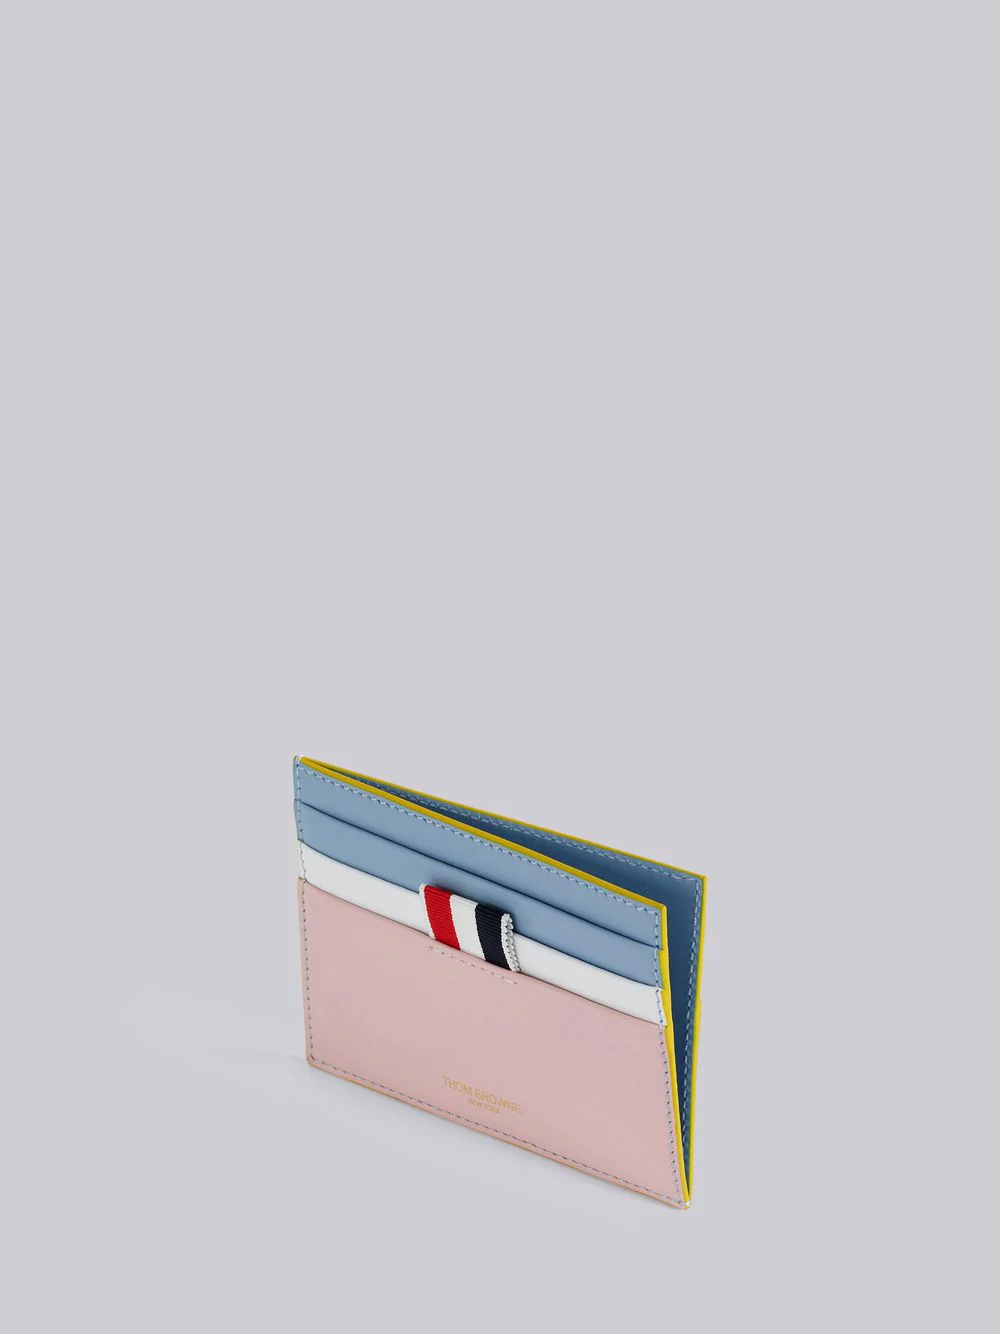 THOM BROWNE THOM BROWNE STAINED CALFSKIN NOTE CARDHOLDER,MAW144C0479413253338